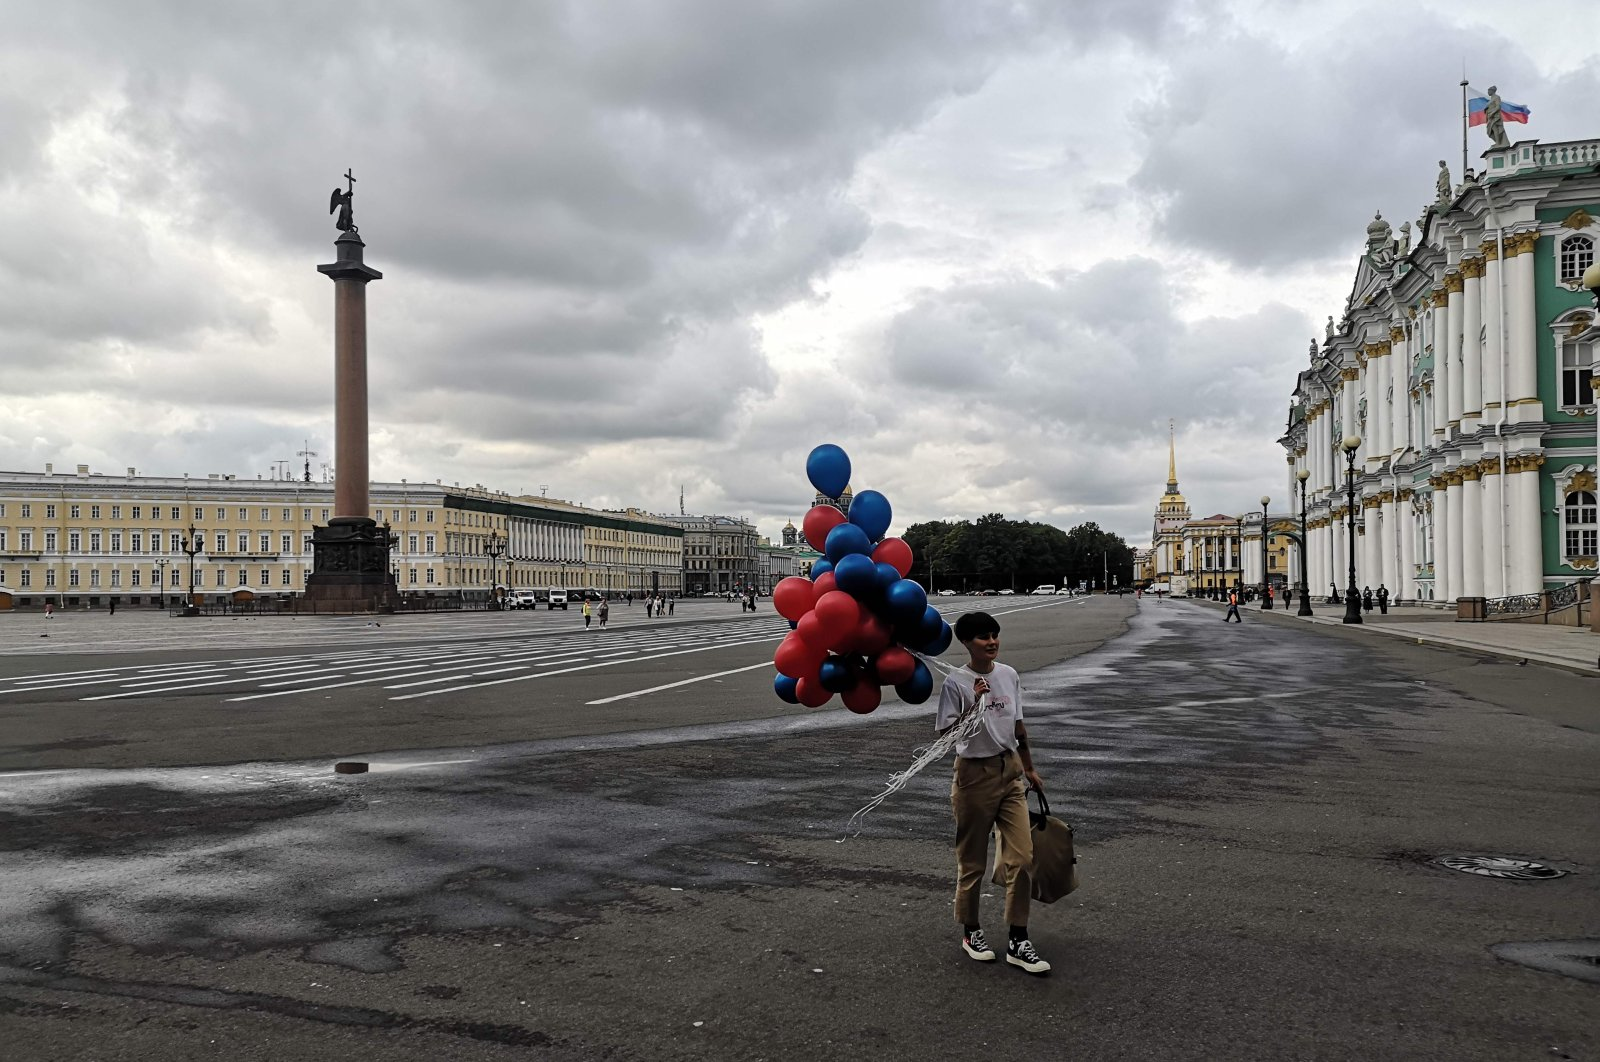 A woman walks with balloons on Dvortsovaya (Palace) Square in St. Petersburg, Russia, Aug. 31, 2020. (AFP Photo)